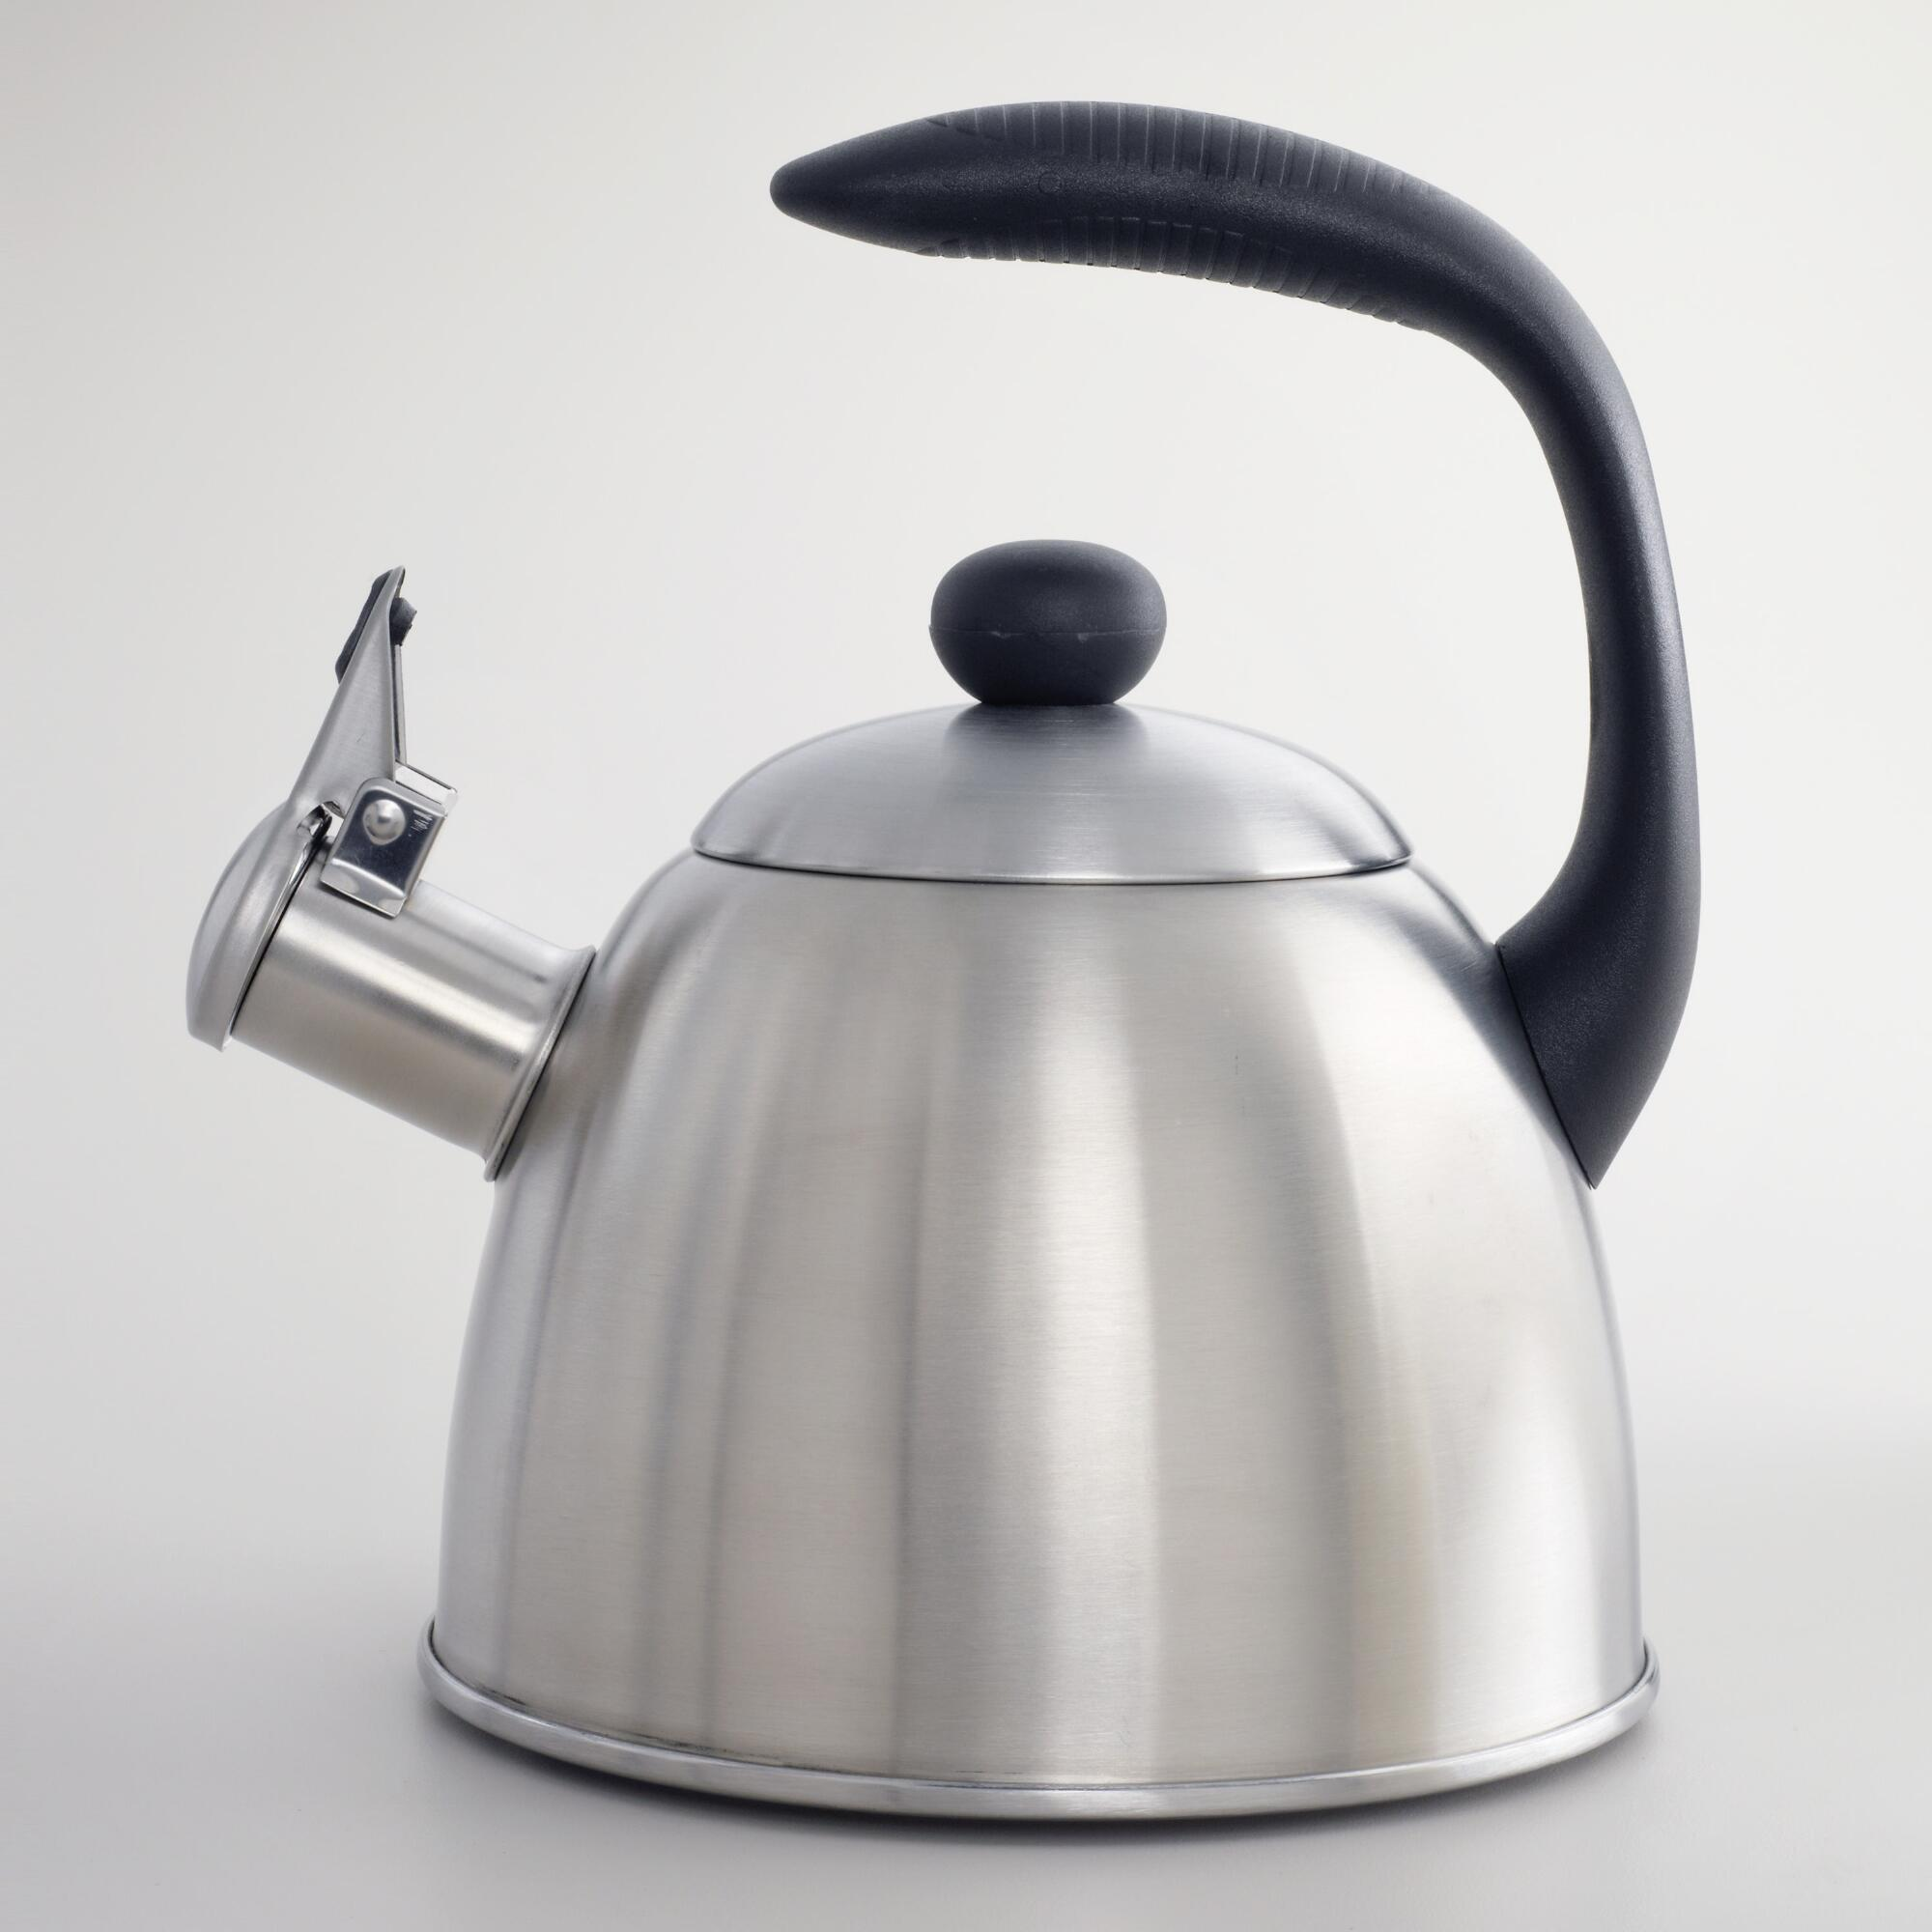 quart stainless steel teakettle  world market -